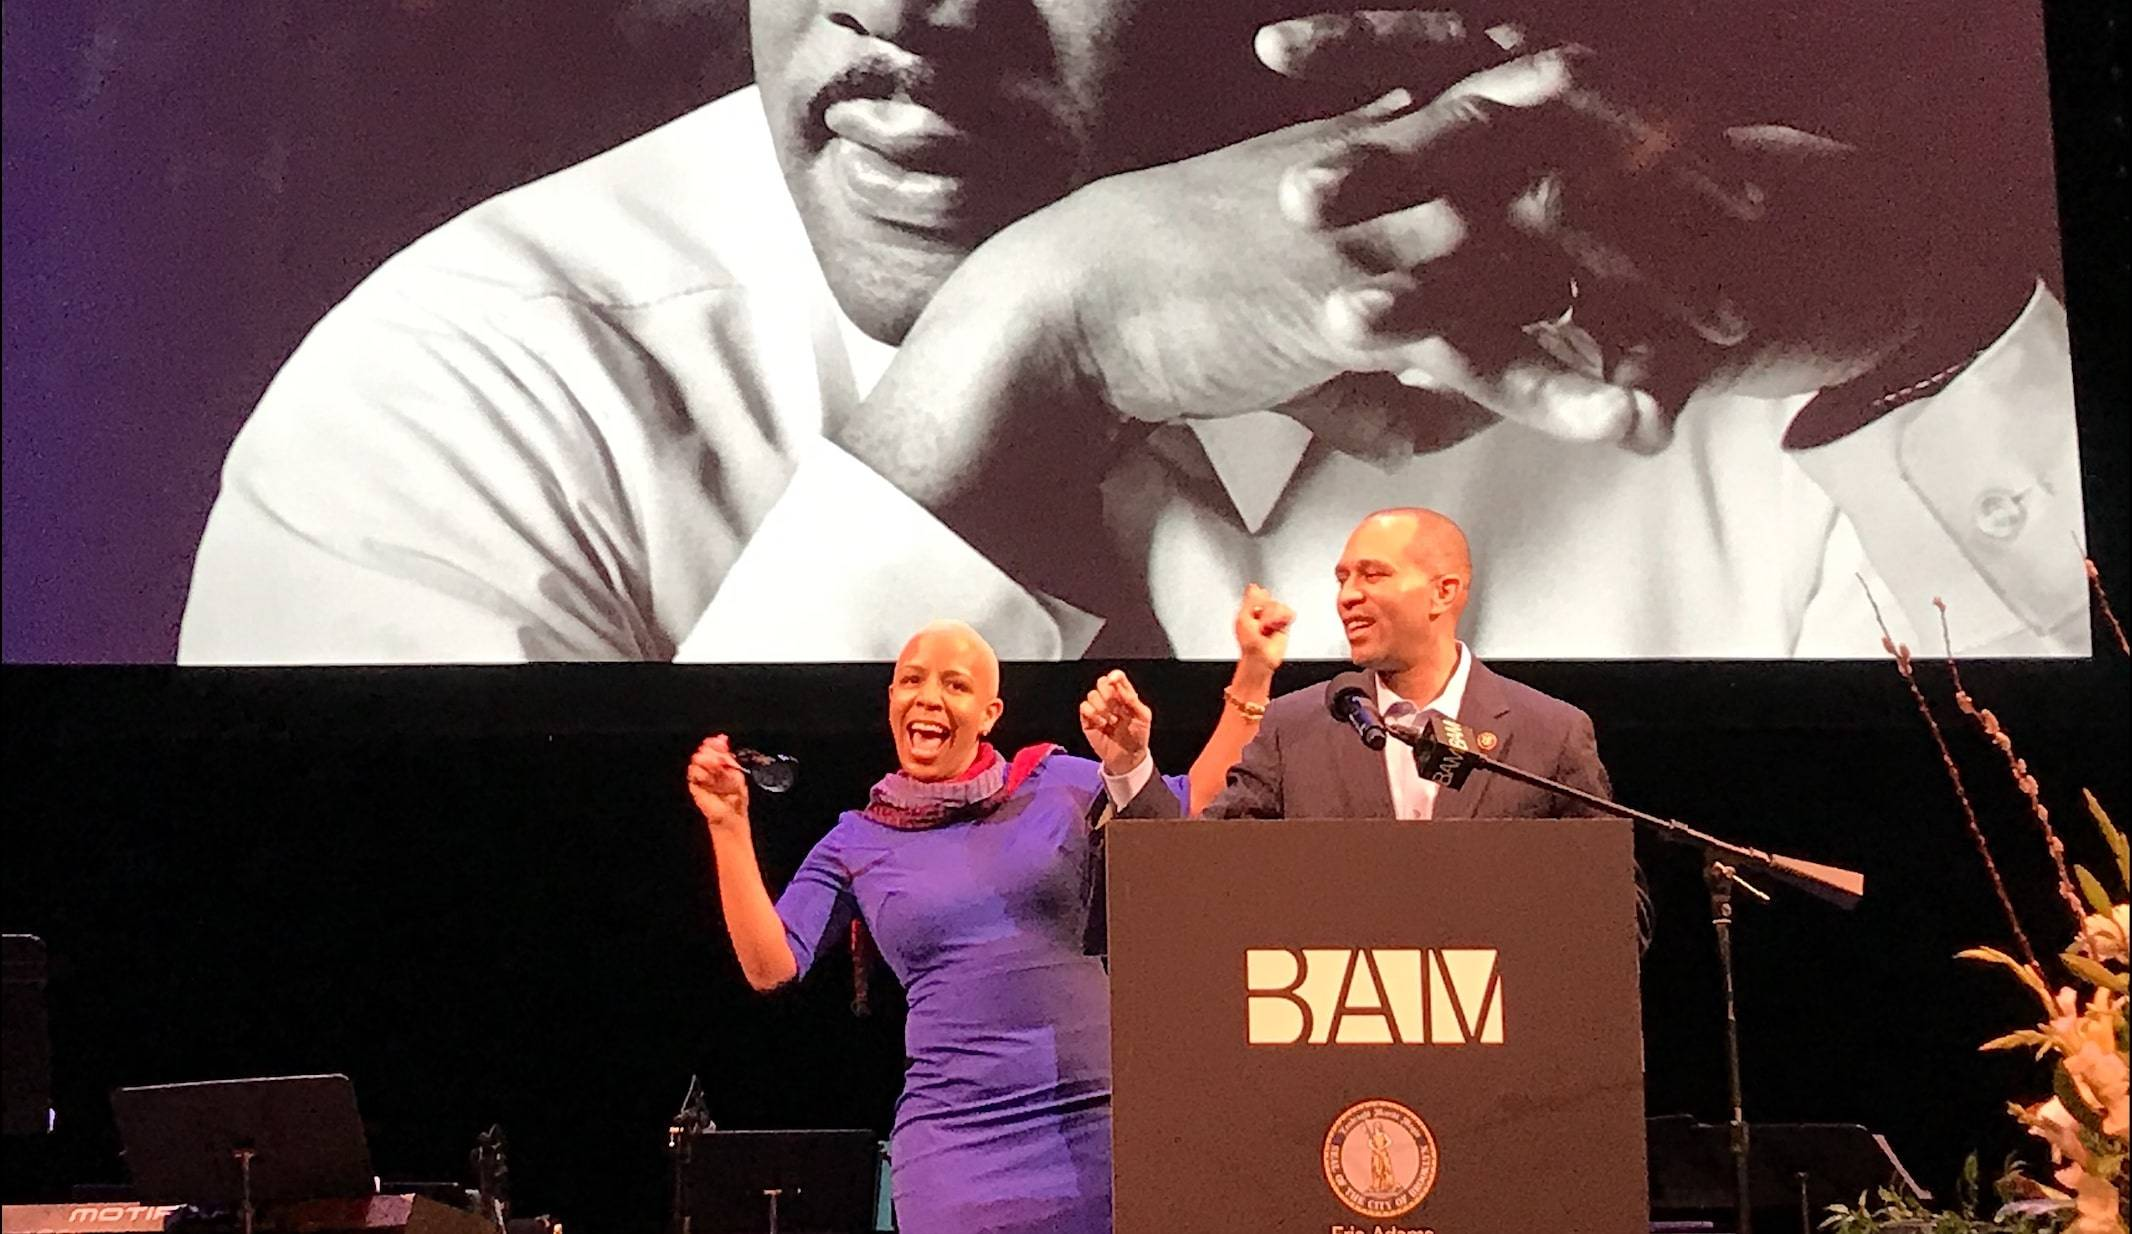 This year's celebration was both a loving commemoration as well as a call to action to not give up on Dr. King's dream.